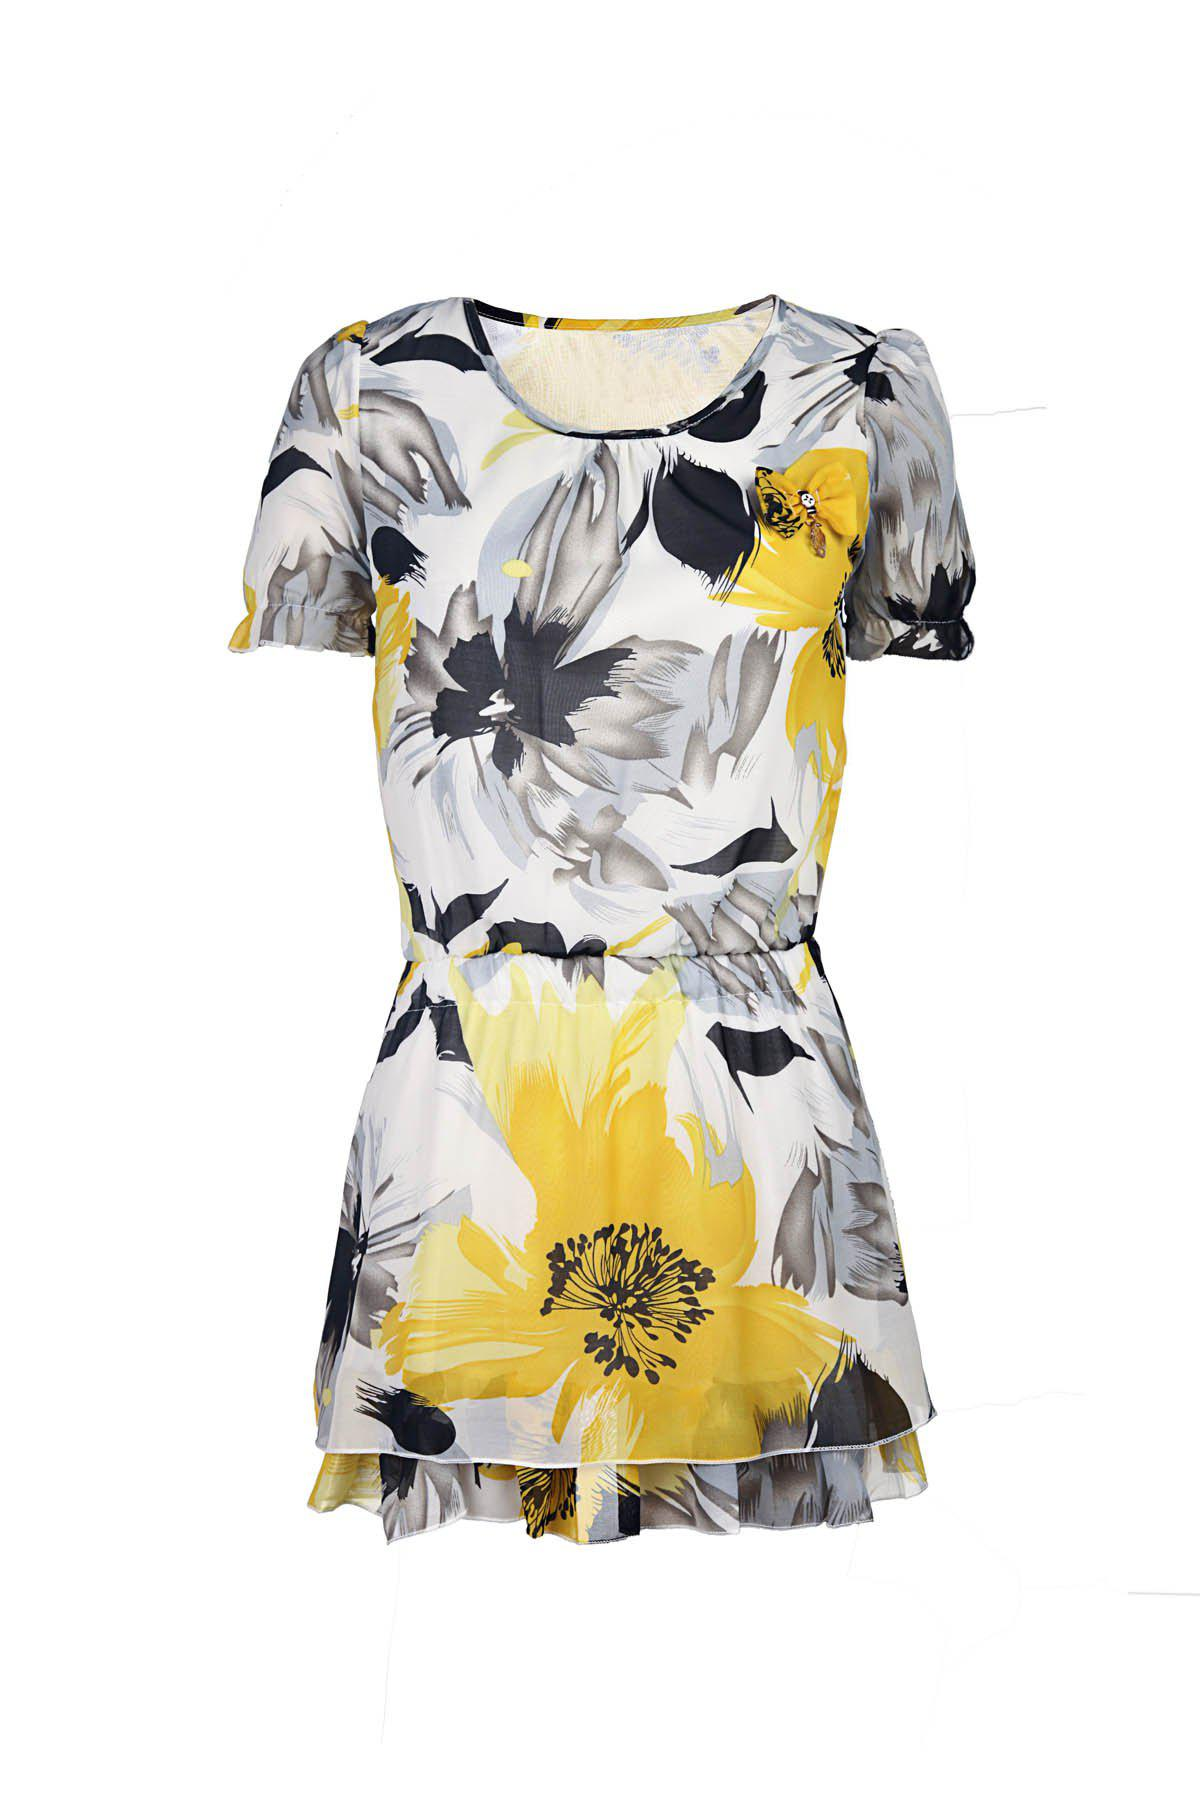 Floral Print Sweet Scoop Neck Short Sleeve Women's Chiffon Dress - YELLOW 2XL